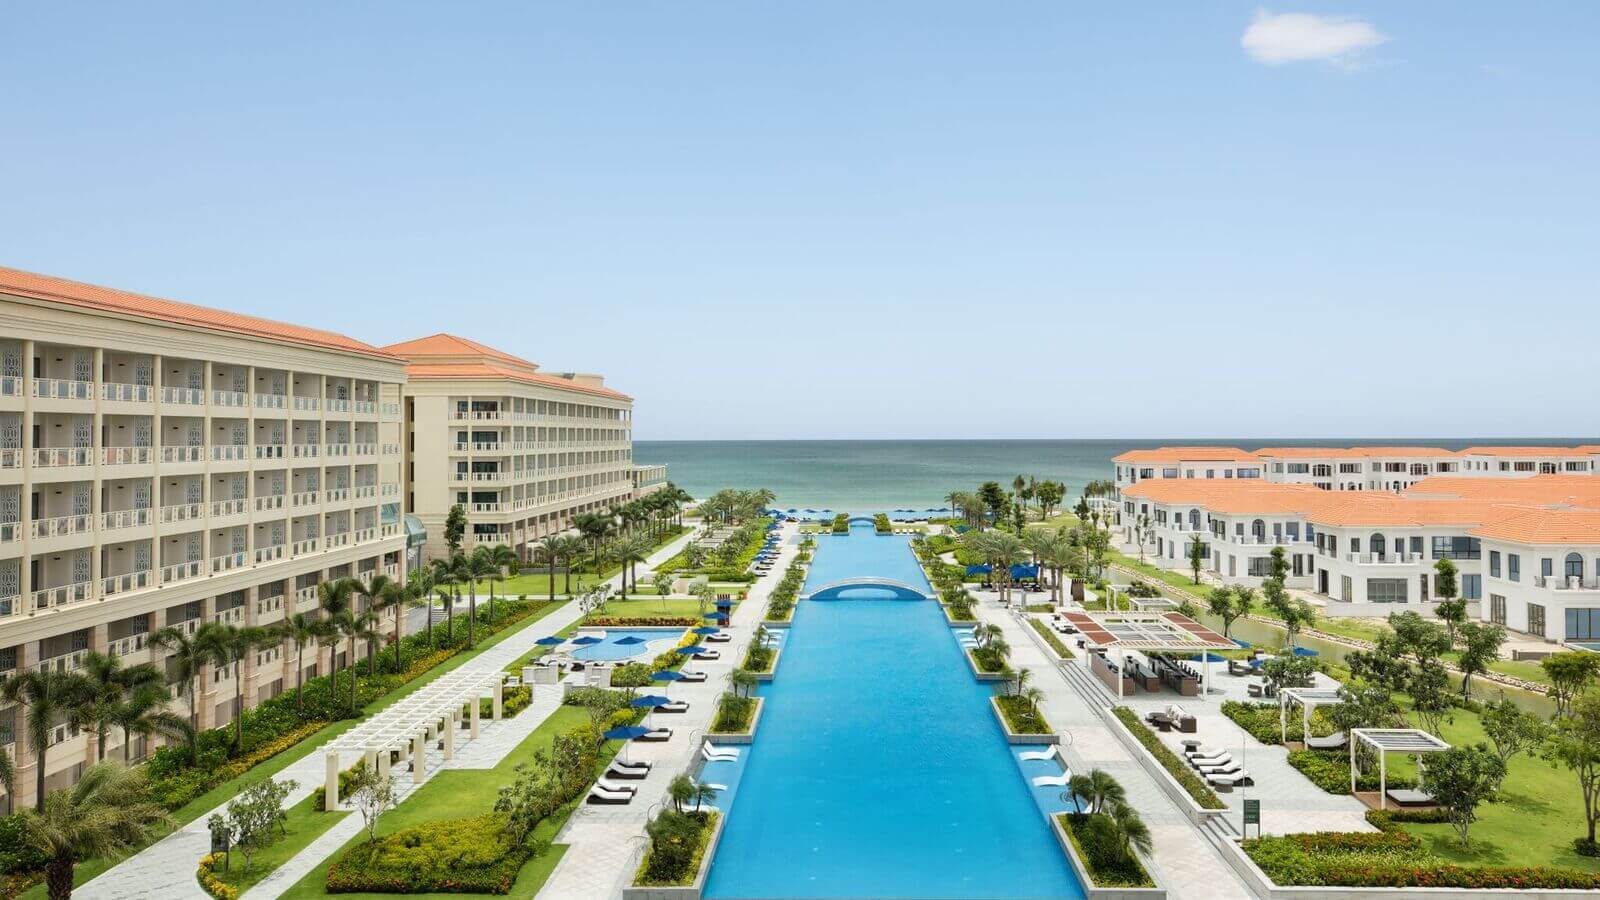 Sheraton Grand Danang Resort Marry